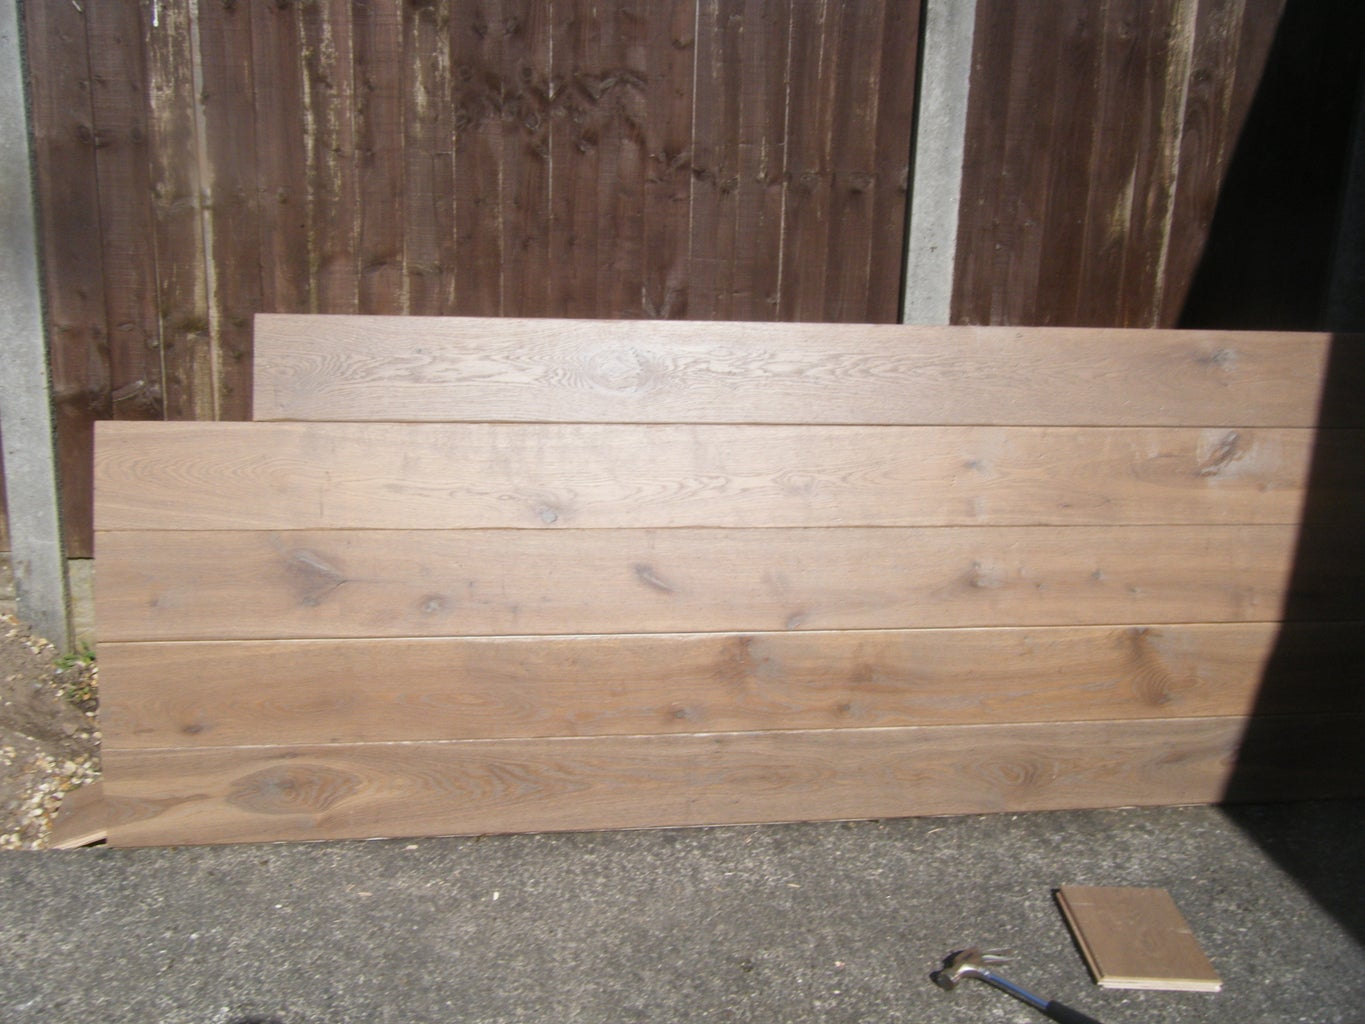 Make and Place the Side Walls of Your Seat / Den